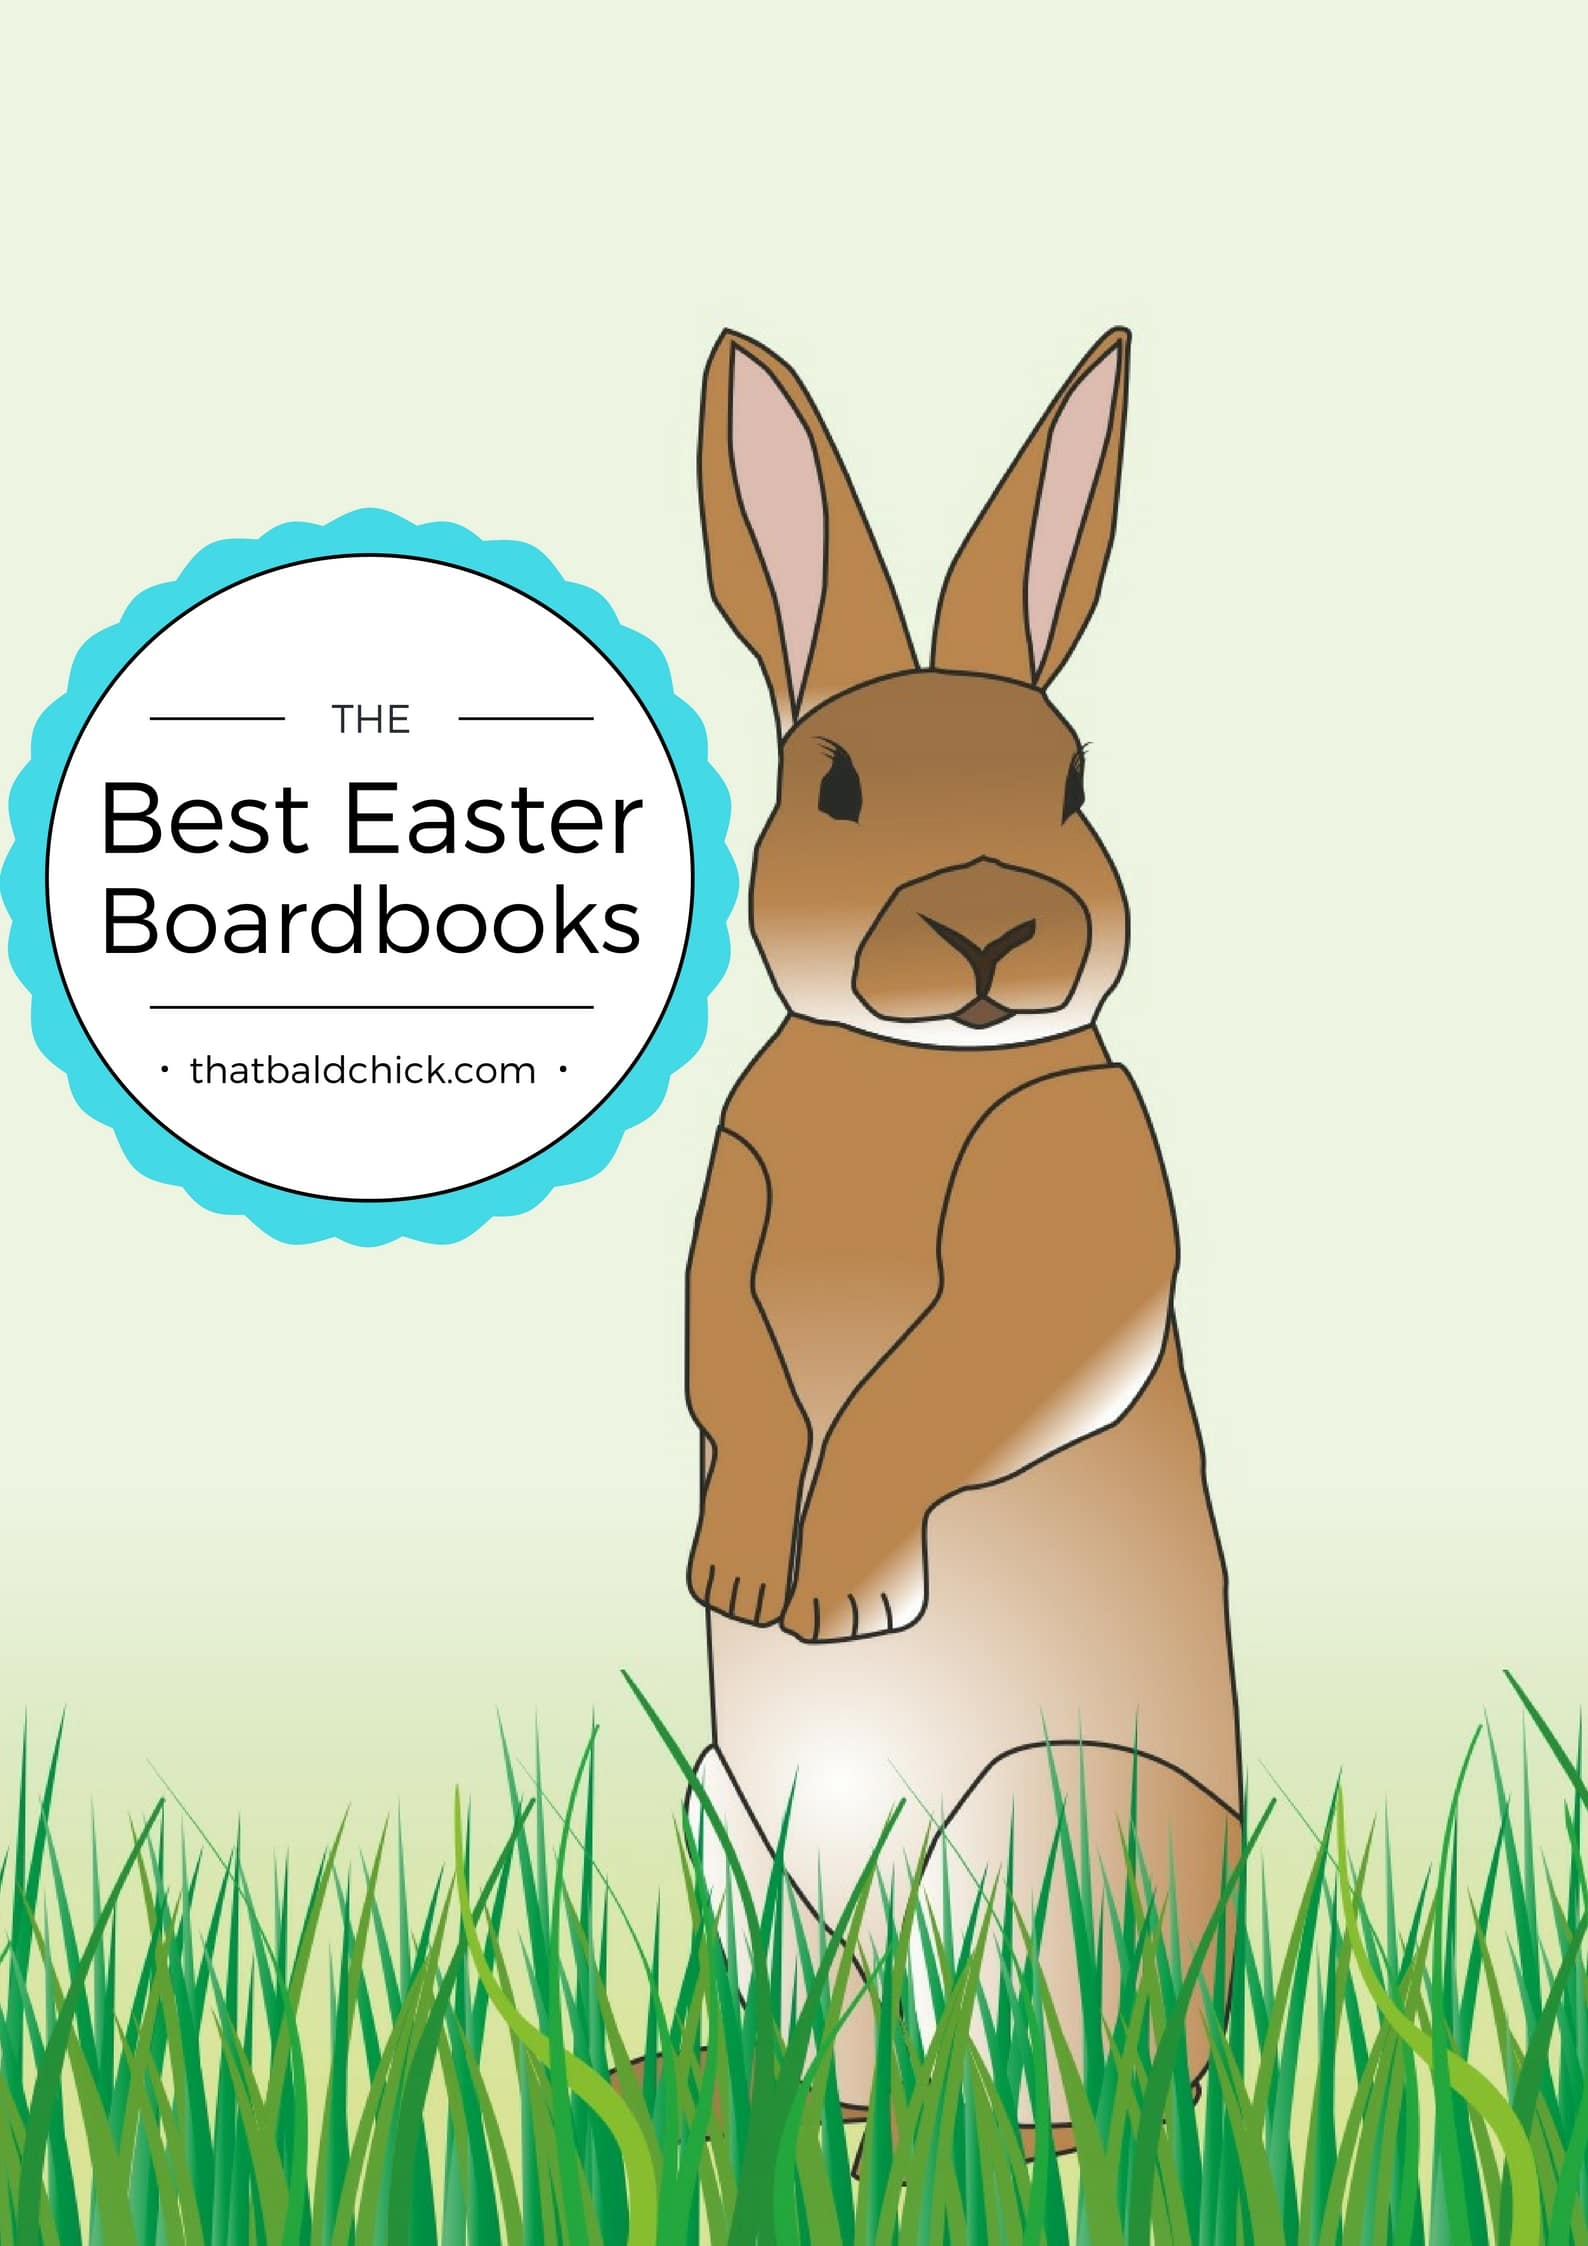 The best Easter boardbooks at thatbaldchick.com